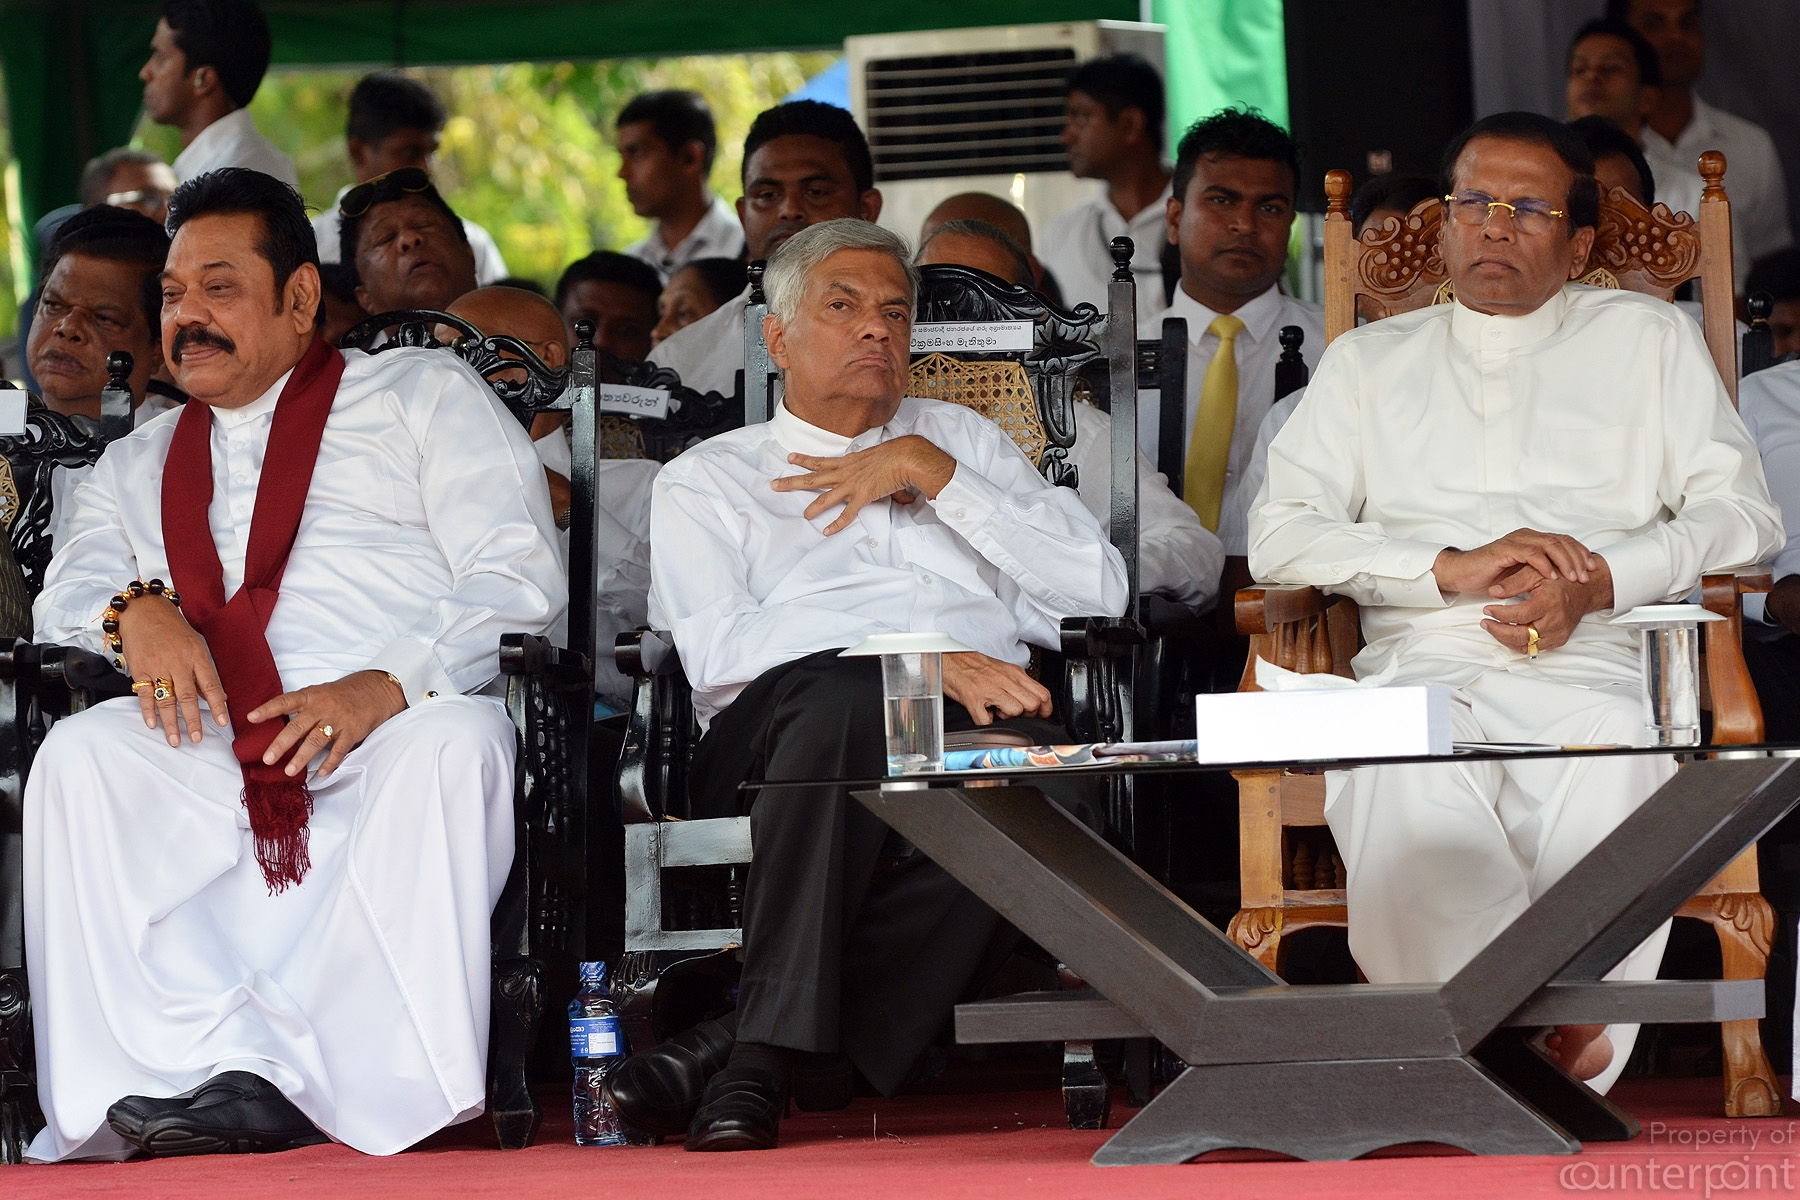 See no evil, hear no evil, say no evil.... In this Vesak season, these three politicians seem to be contemplating about a proverbial Monkey.